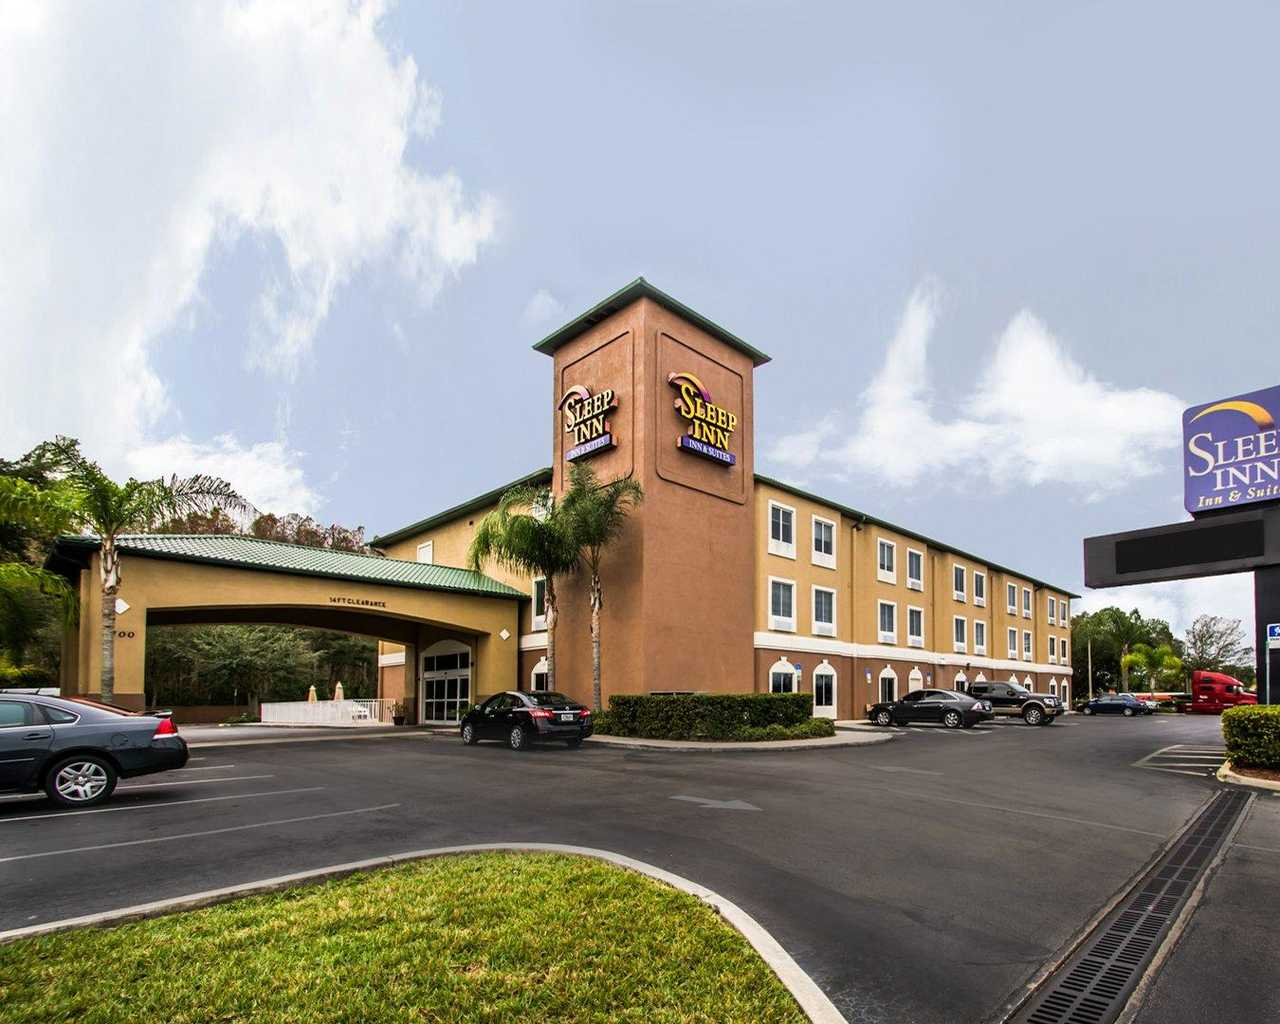 Sleep Inn Orlando Airport - Exterior